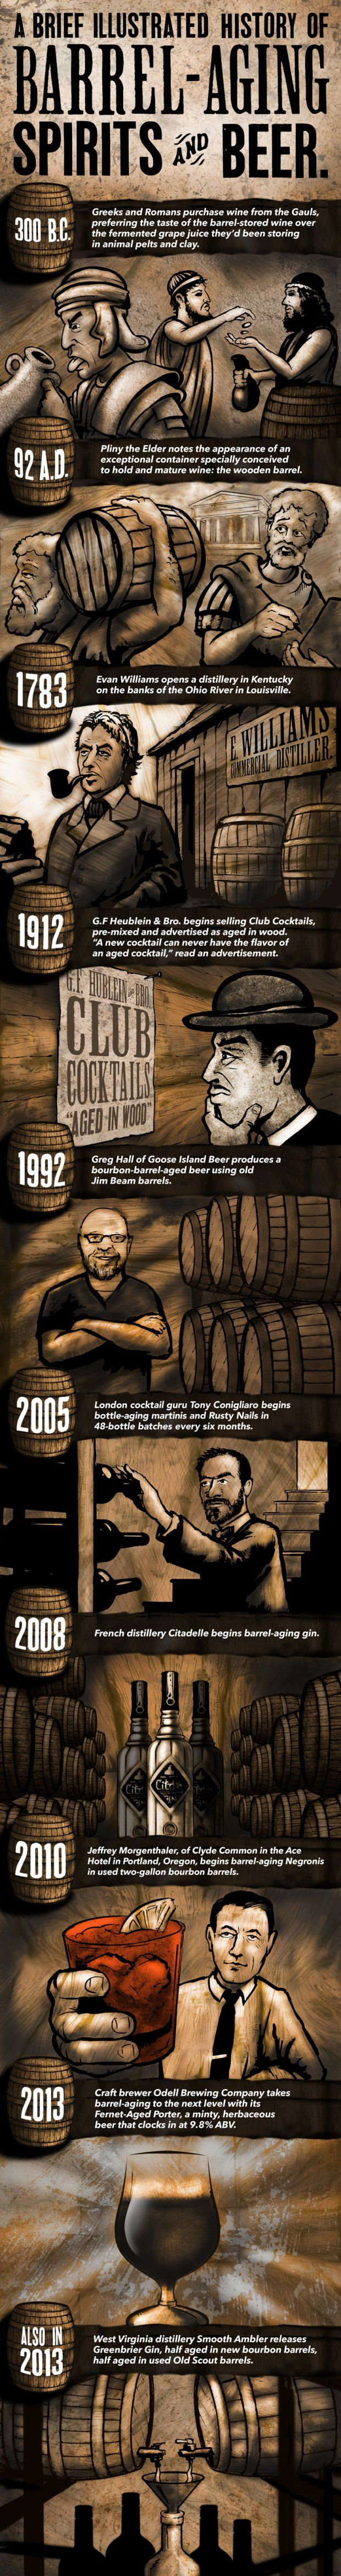 Graphic Tales: A Brief Illustrated History Of Barrel-Aging Spirits And Beer